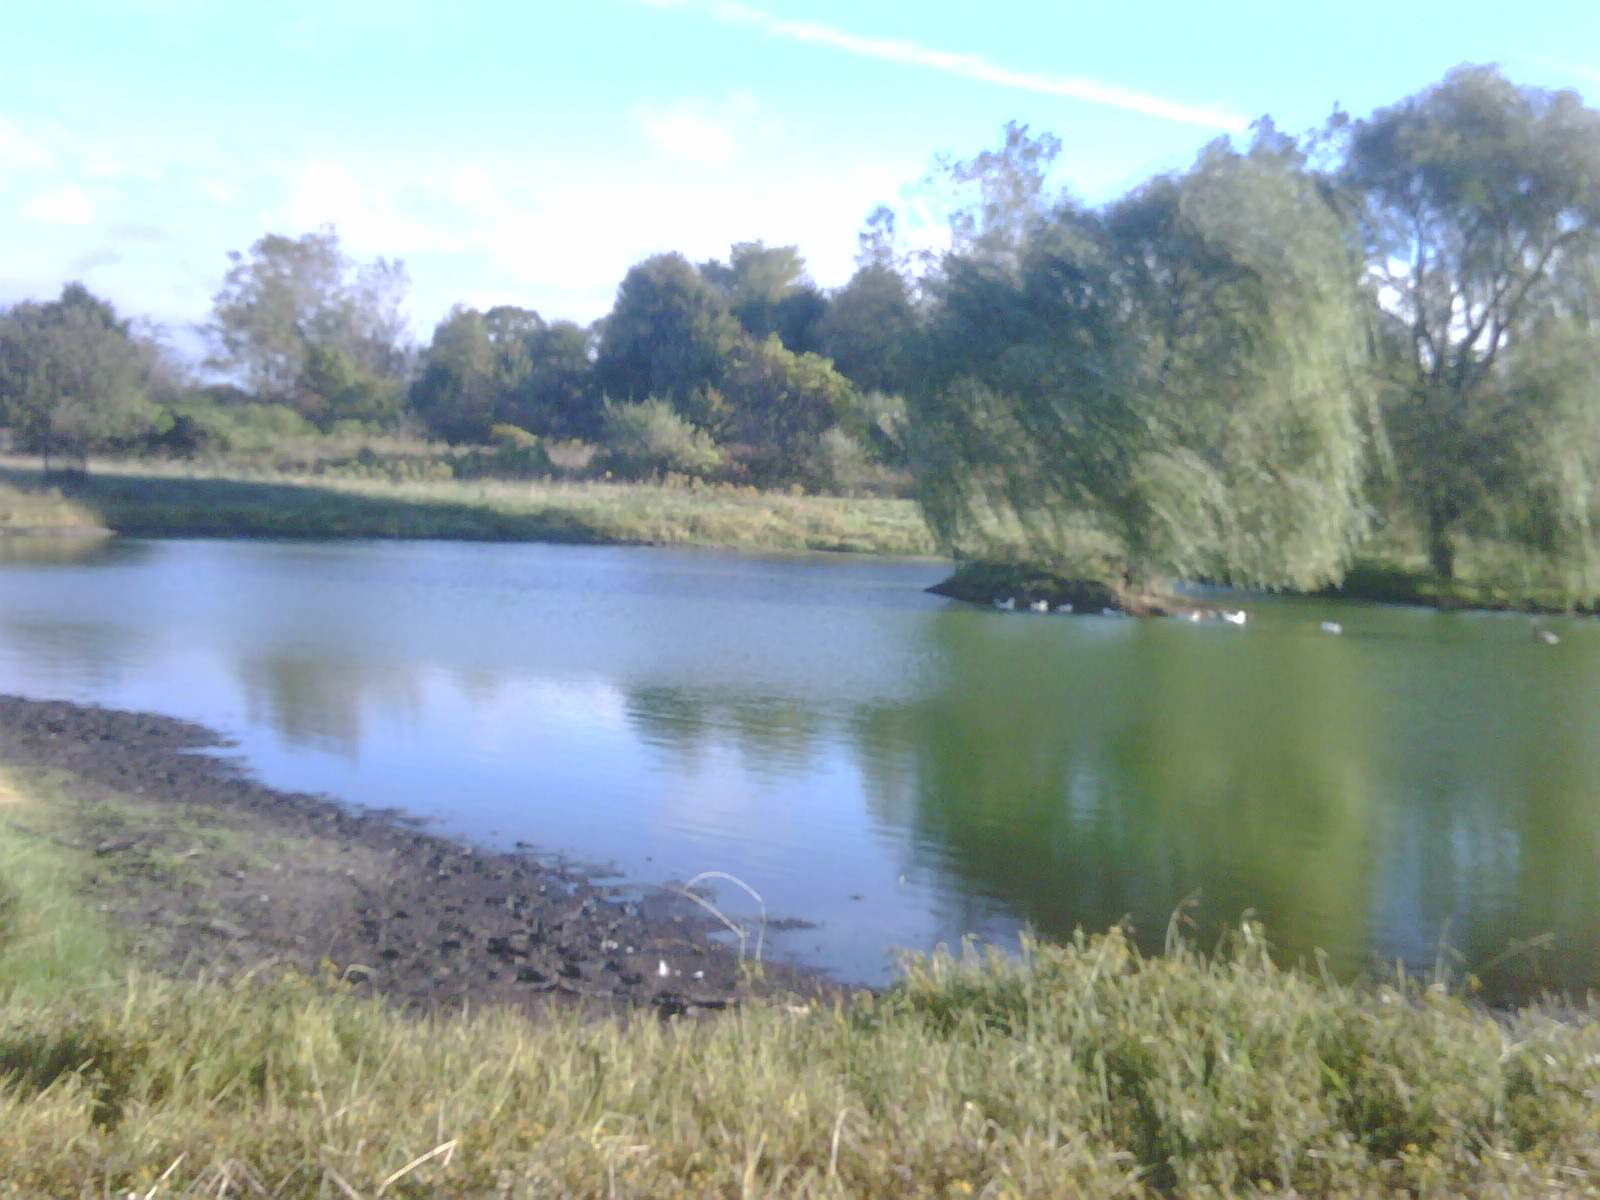 C  Users Scott Pictures ponds a ponds 2010 lapeer duck pond lapeer duck pond in (2)